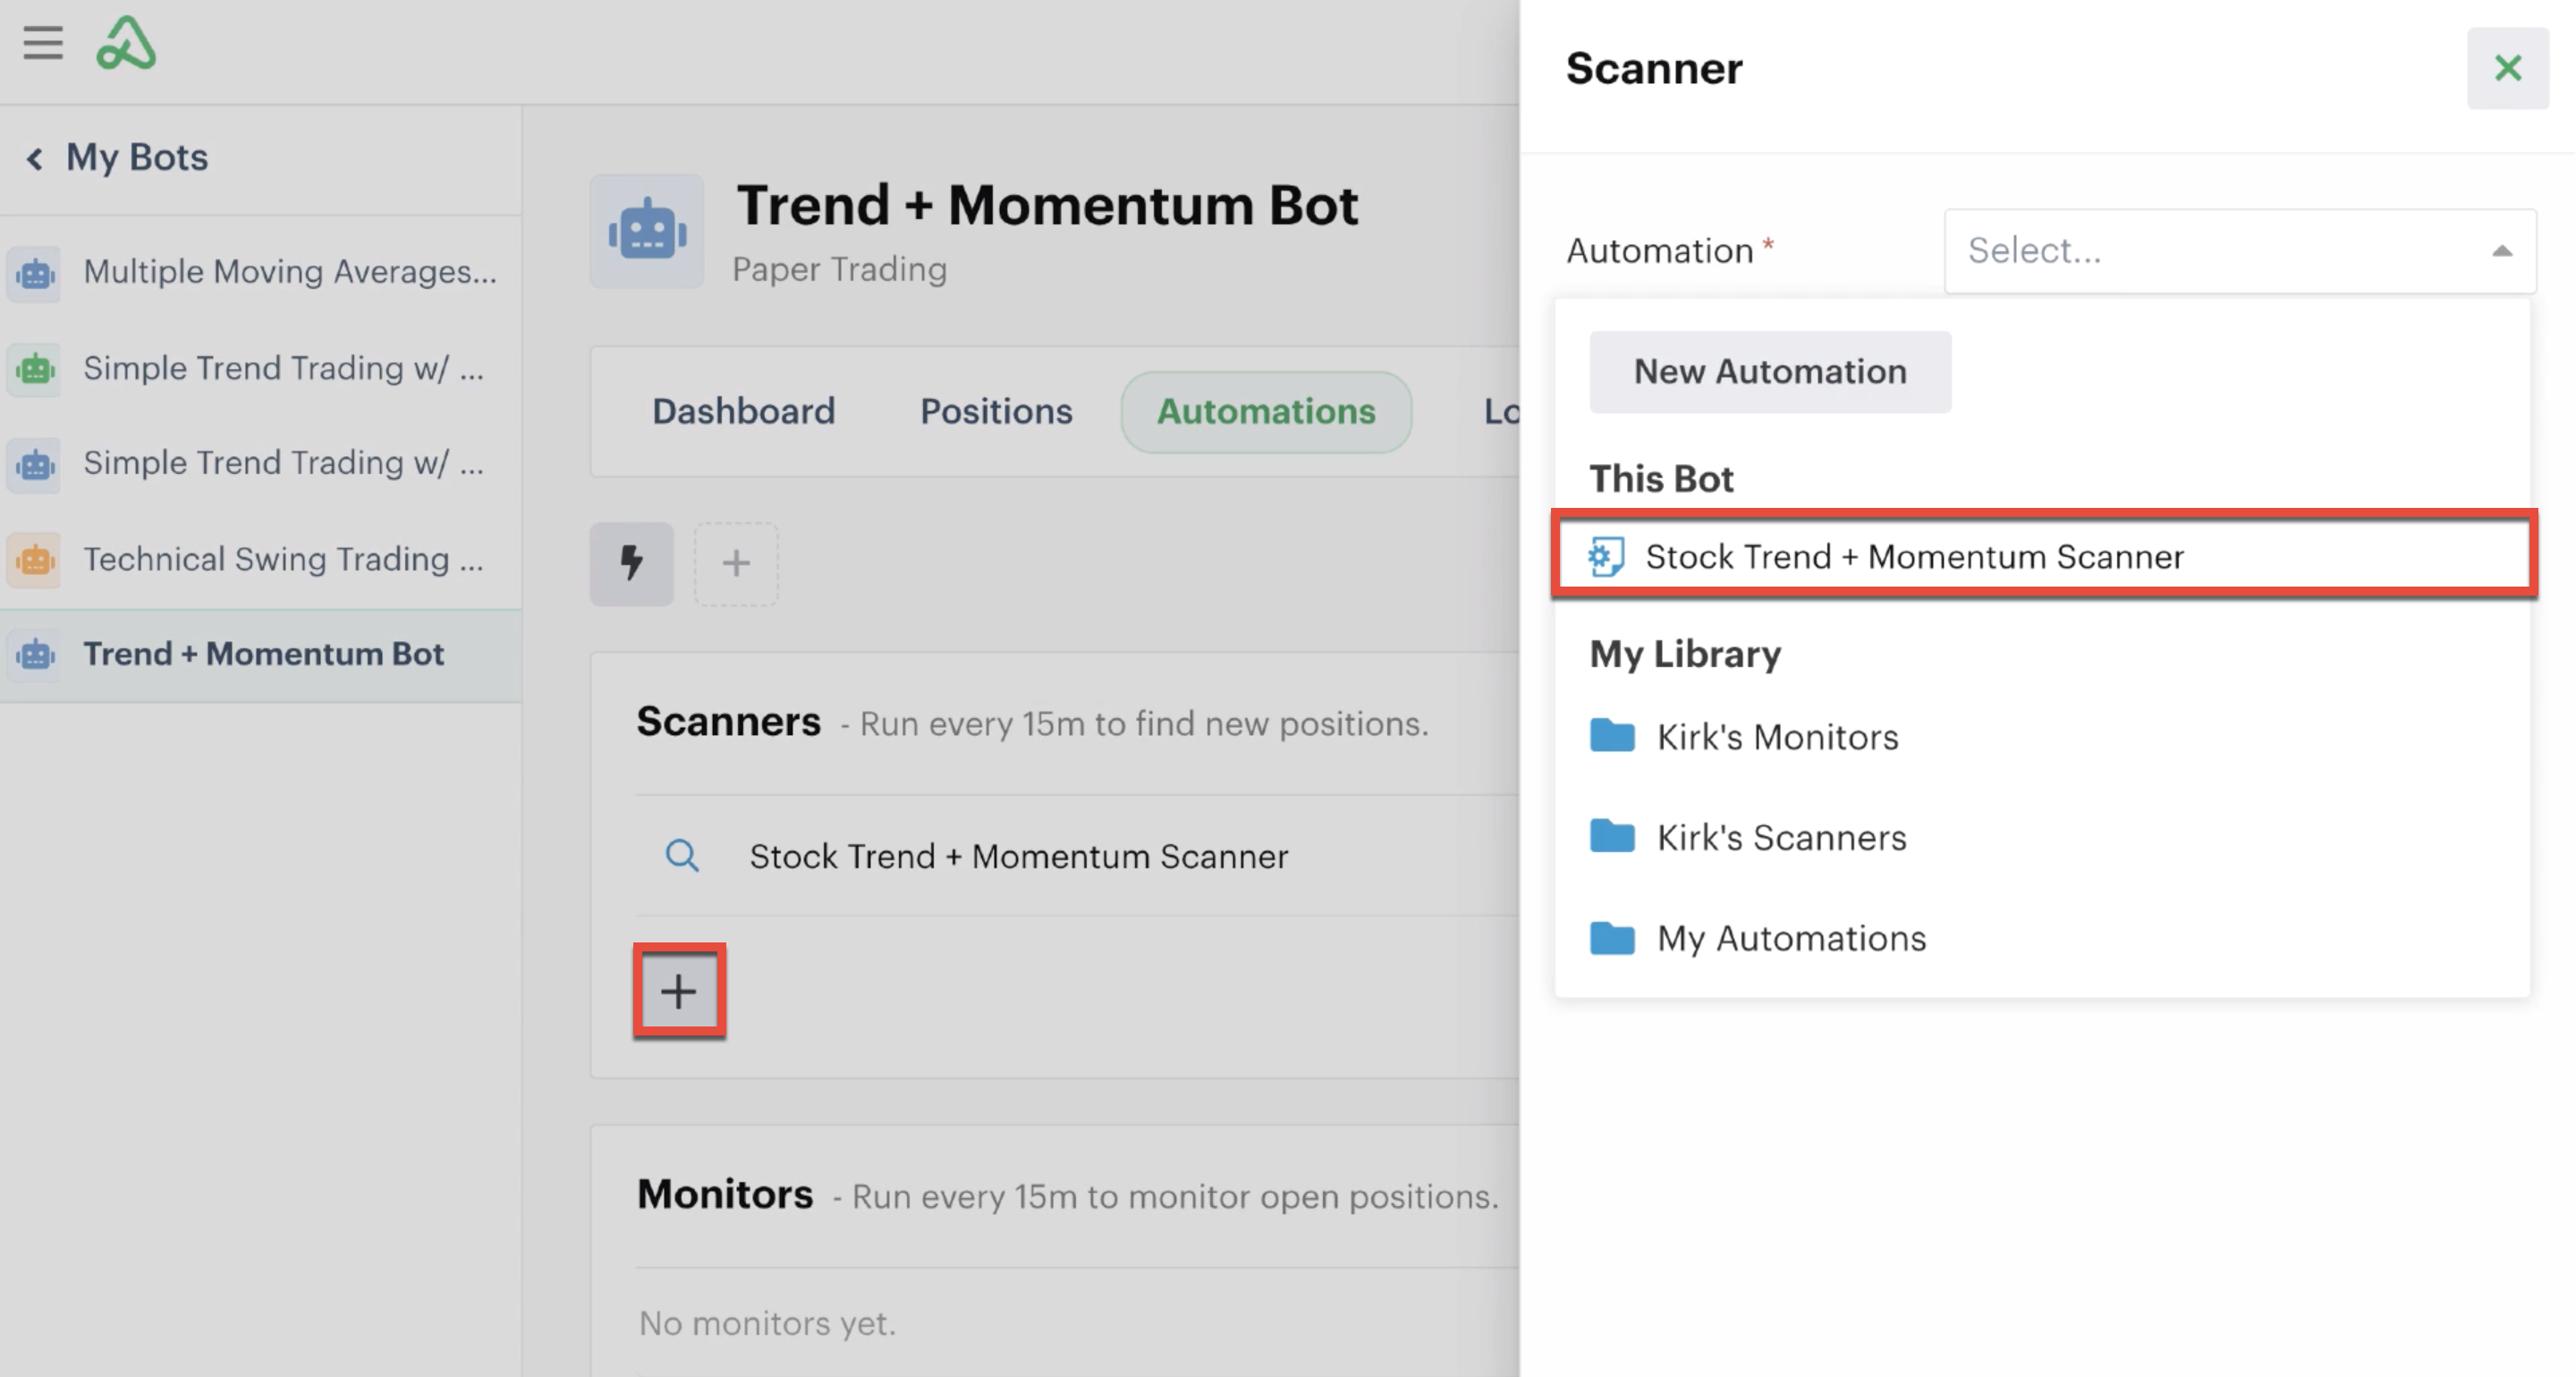 Adding an additional scanner automation copy